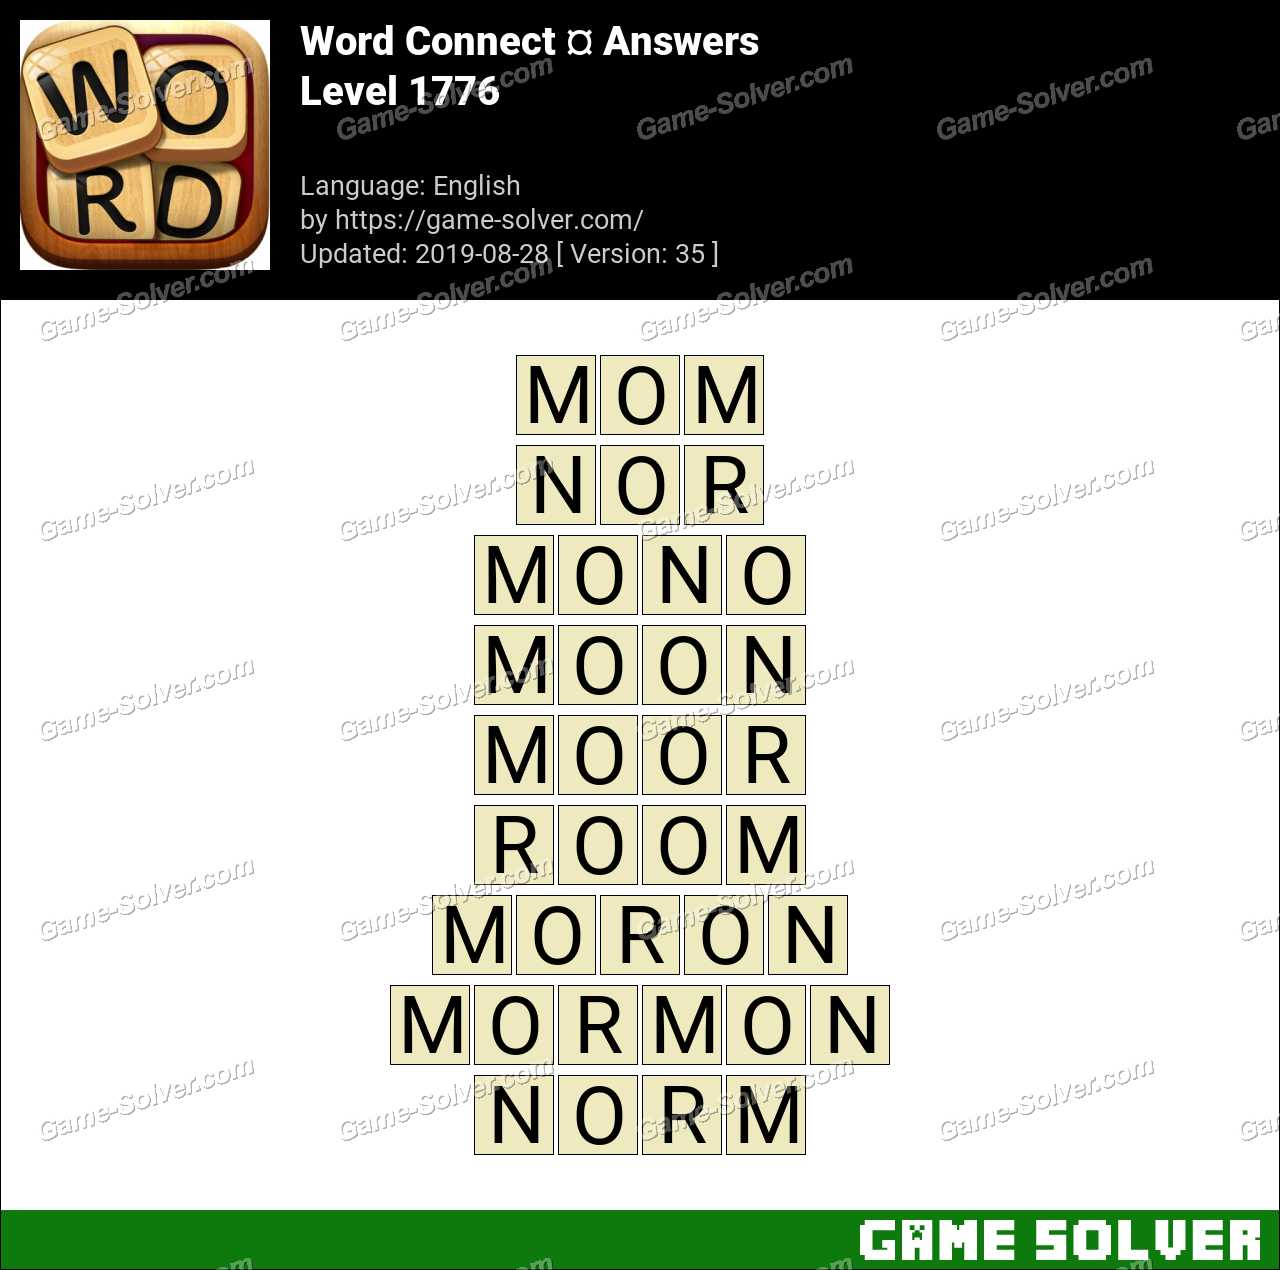 Word Connect Level 1776 Answers